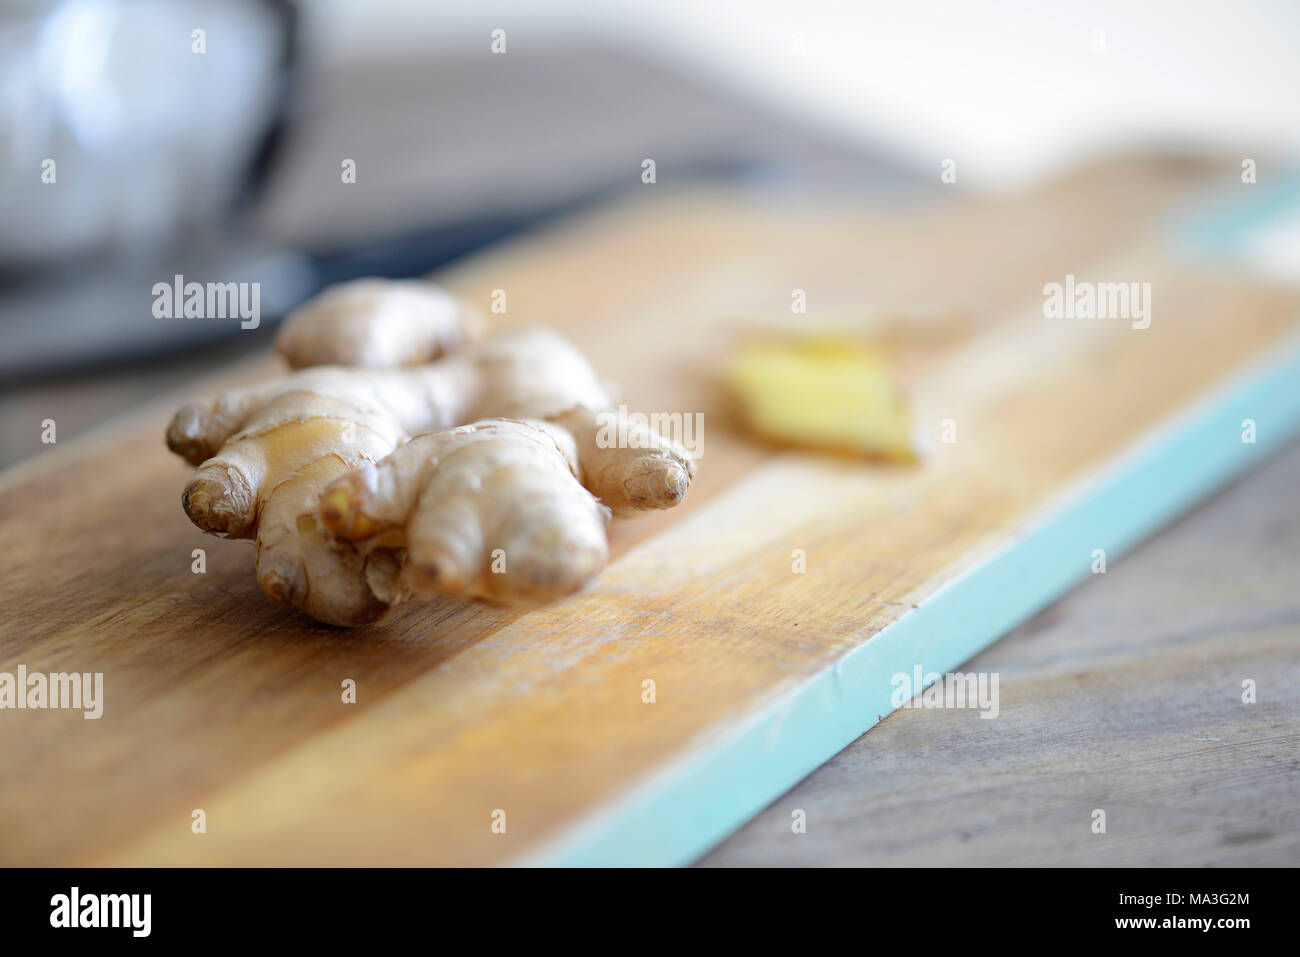 Ginger rhizome, piece, wooden board - Stock Image